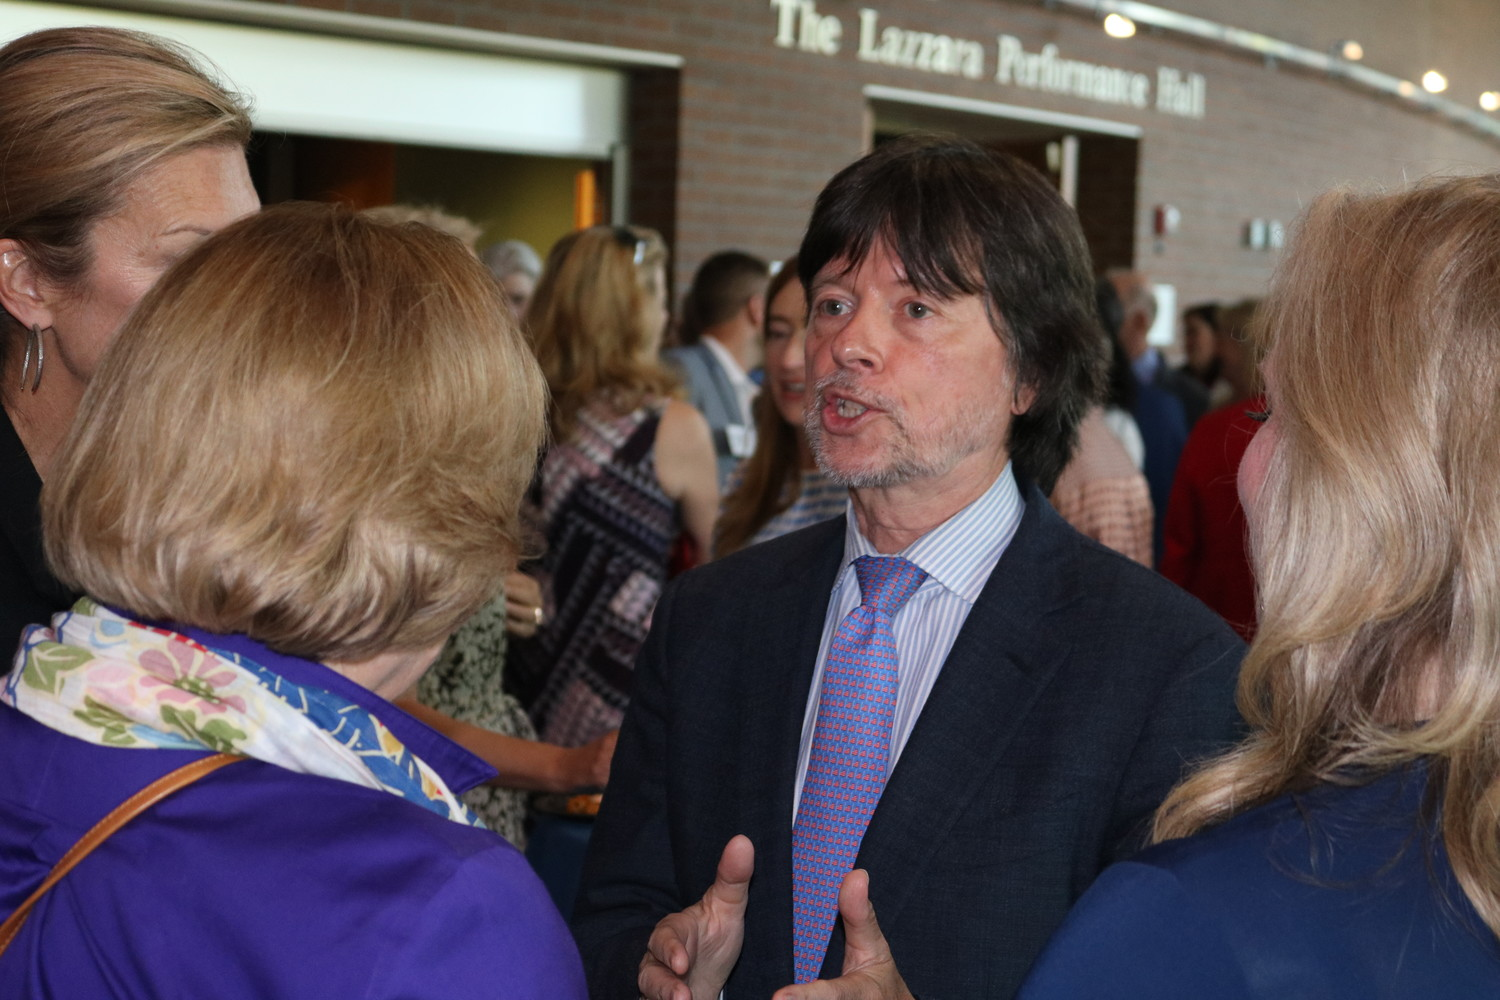 Ken Burns meets with attendees of the screening at a VIP reception.